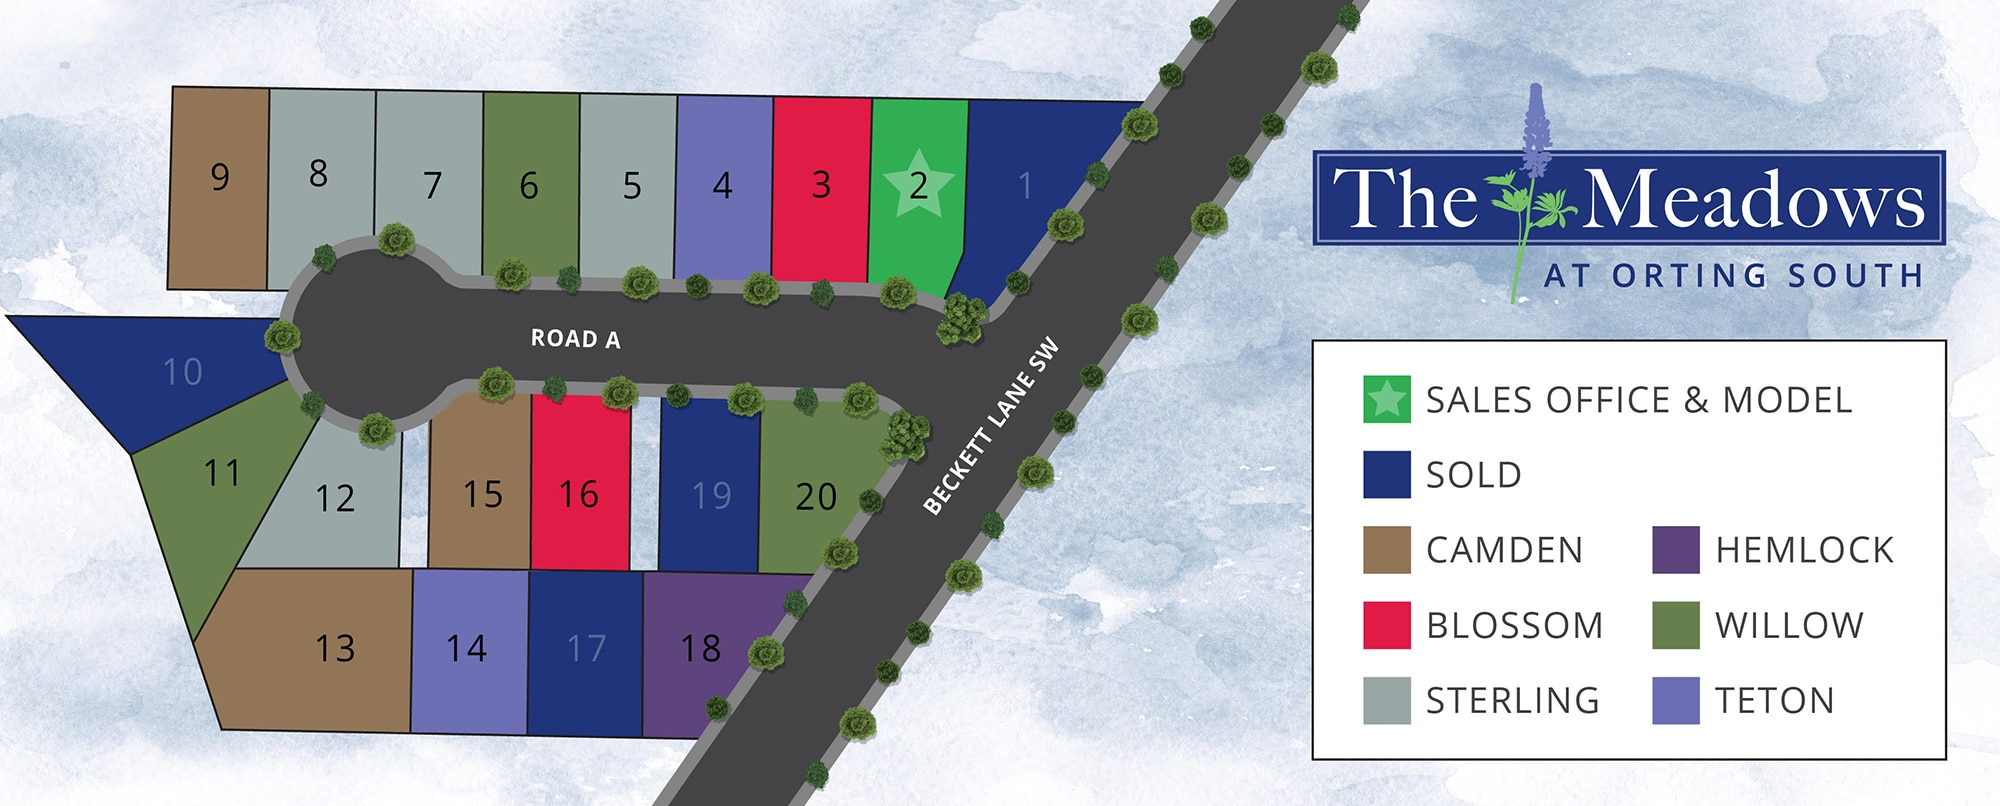 meadows-south-site-map-4-16